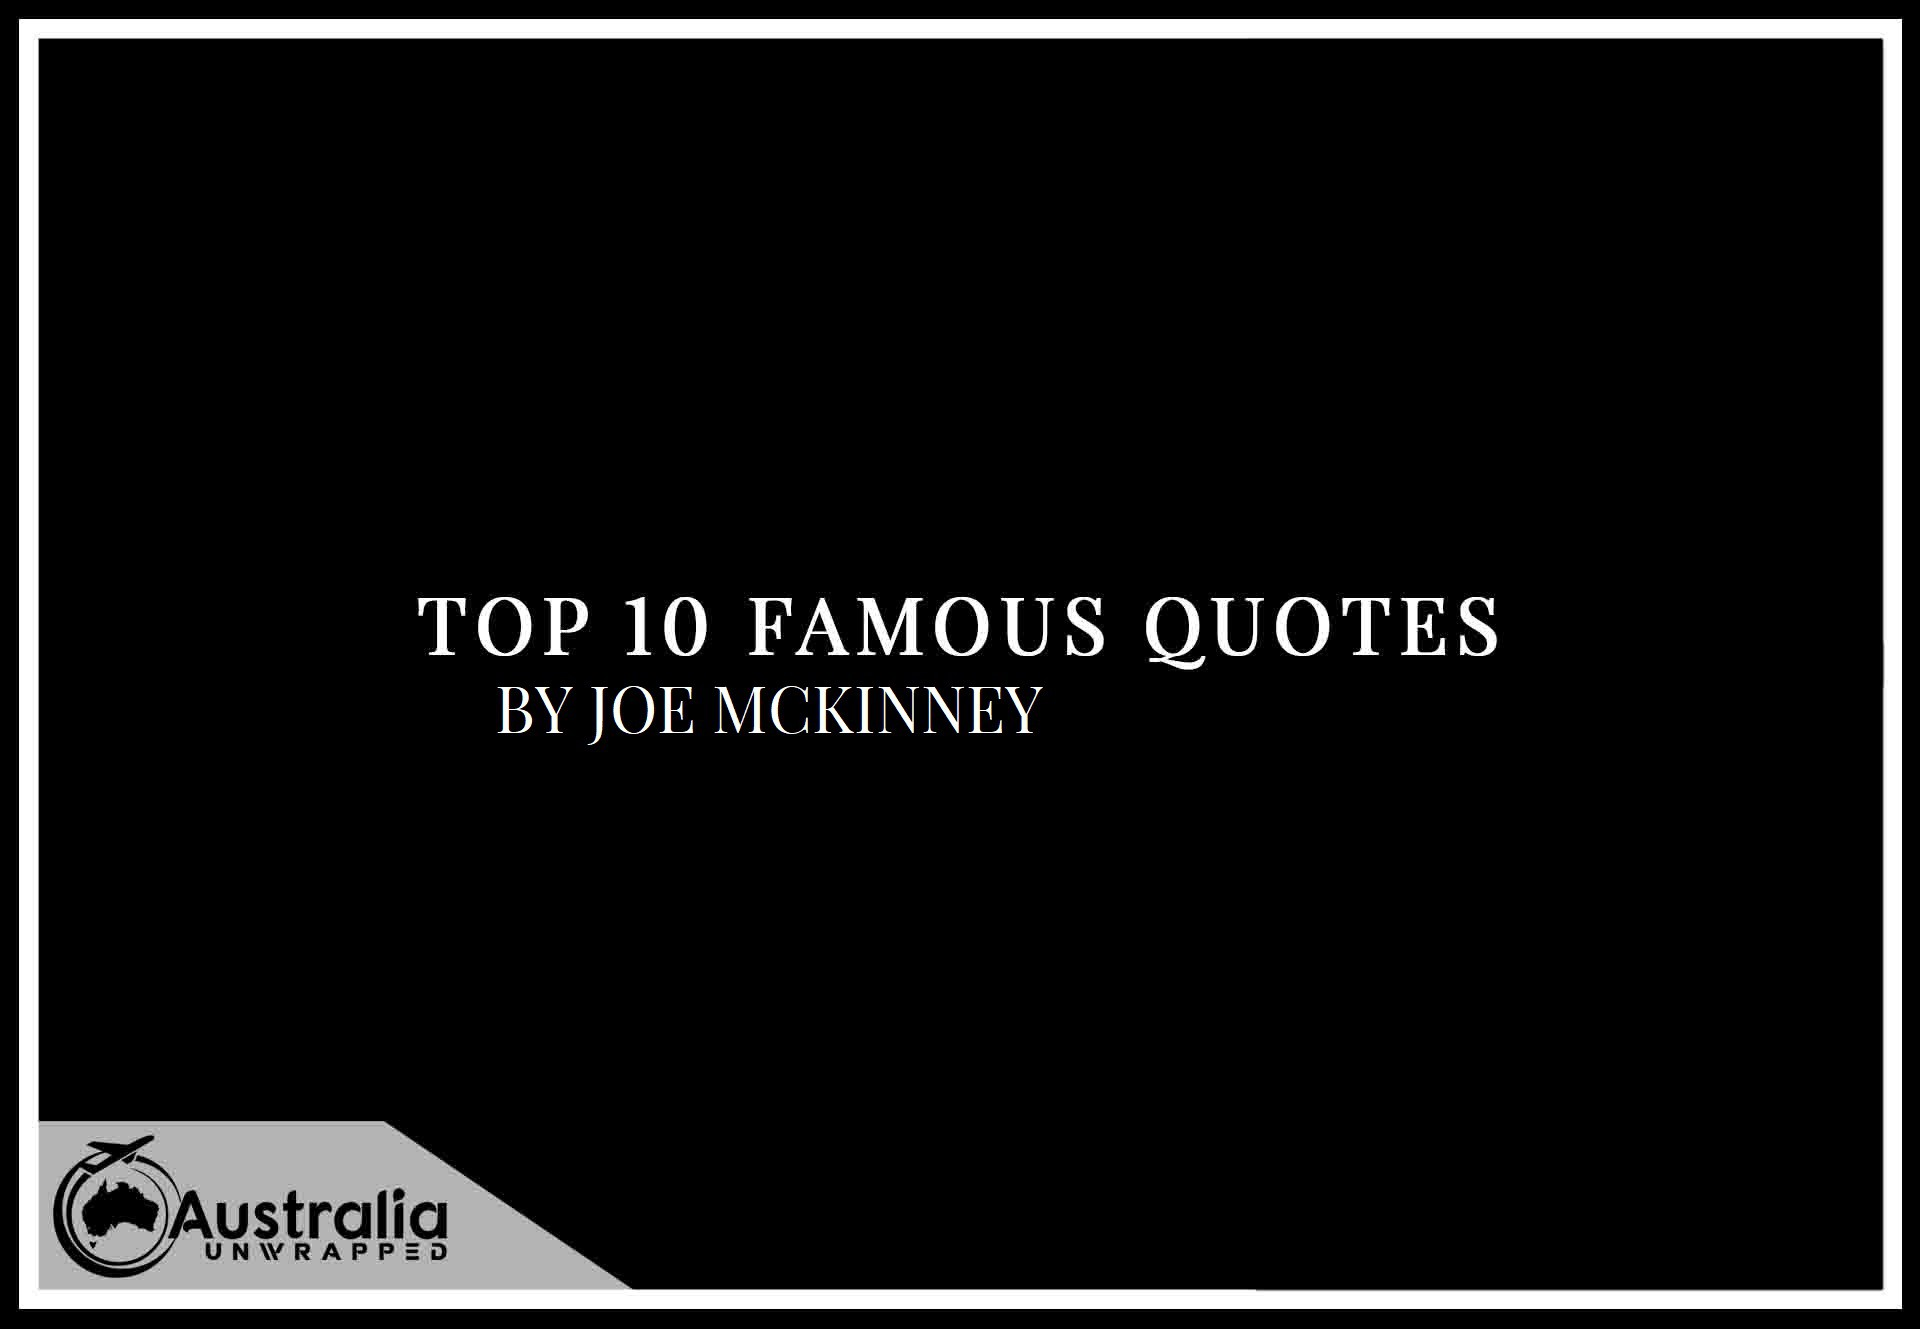 Top 10 Famous Quotes by Author Joe McKinney